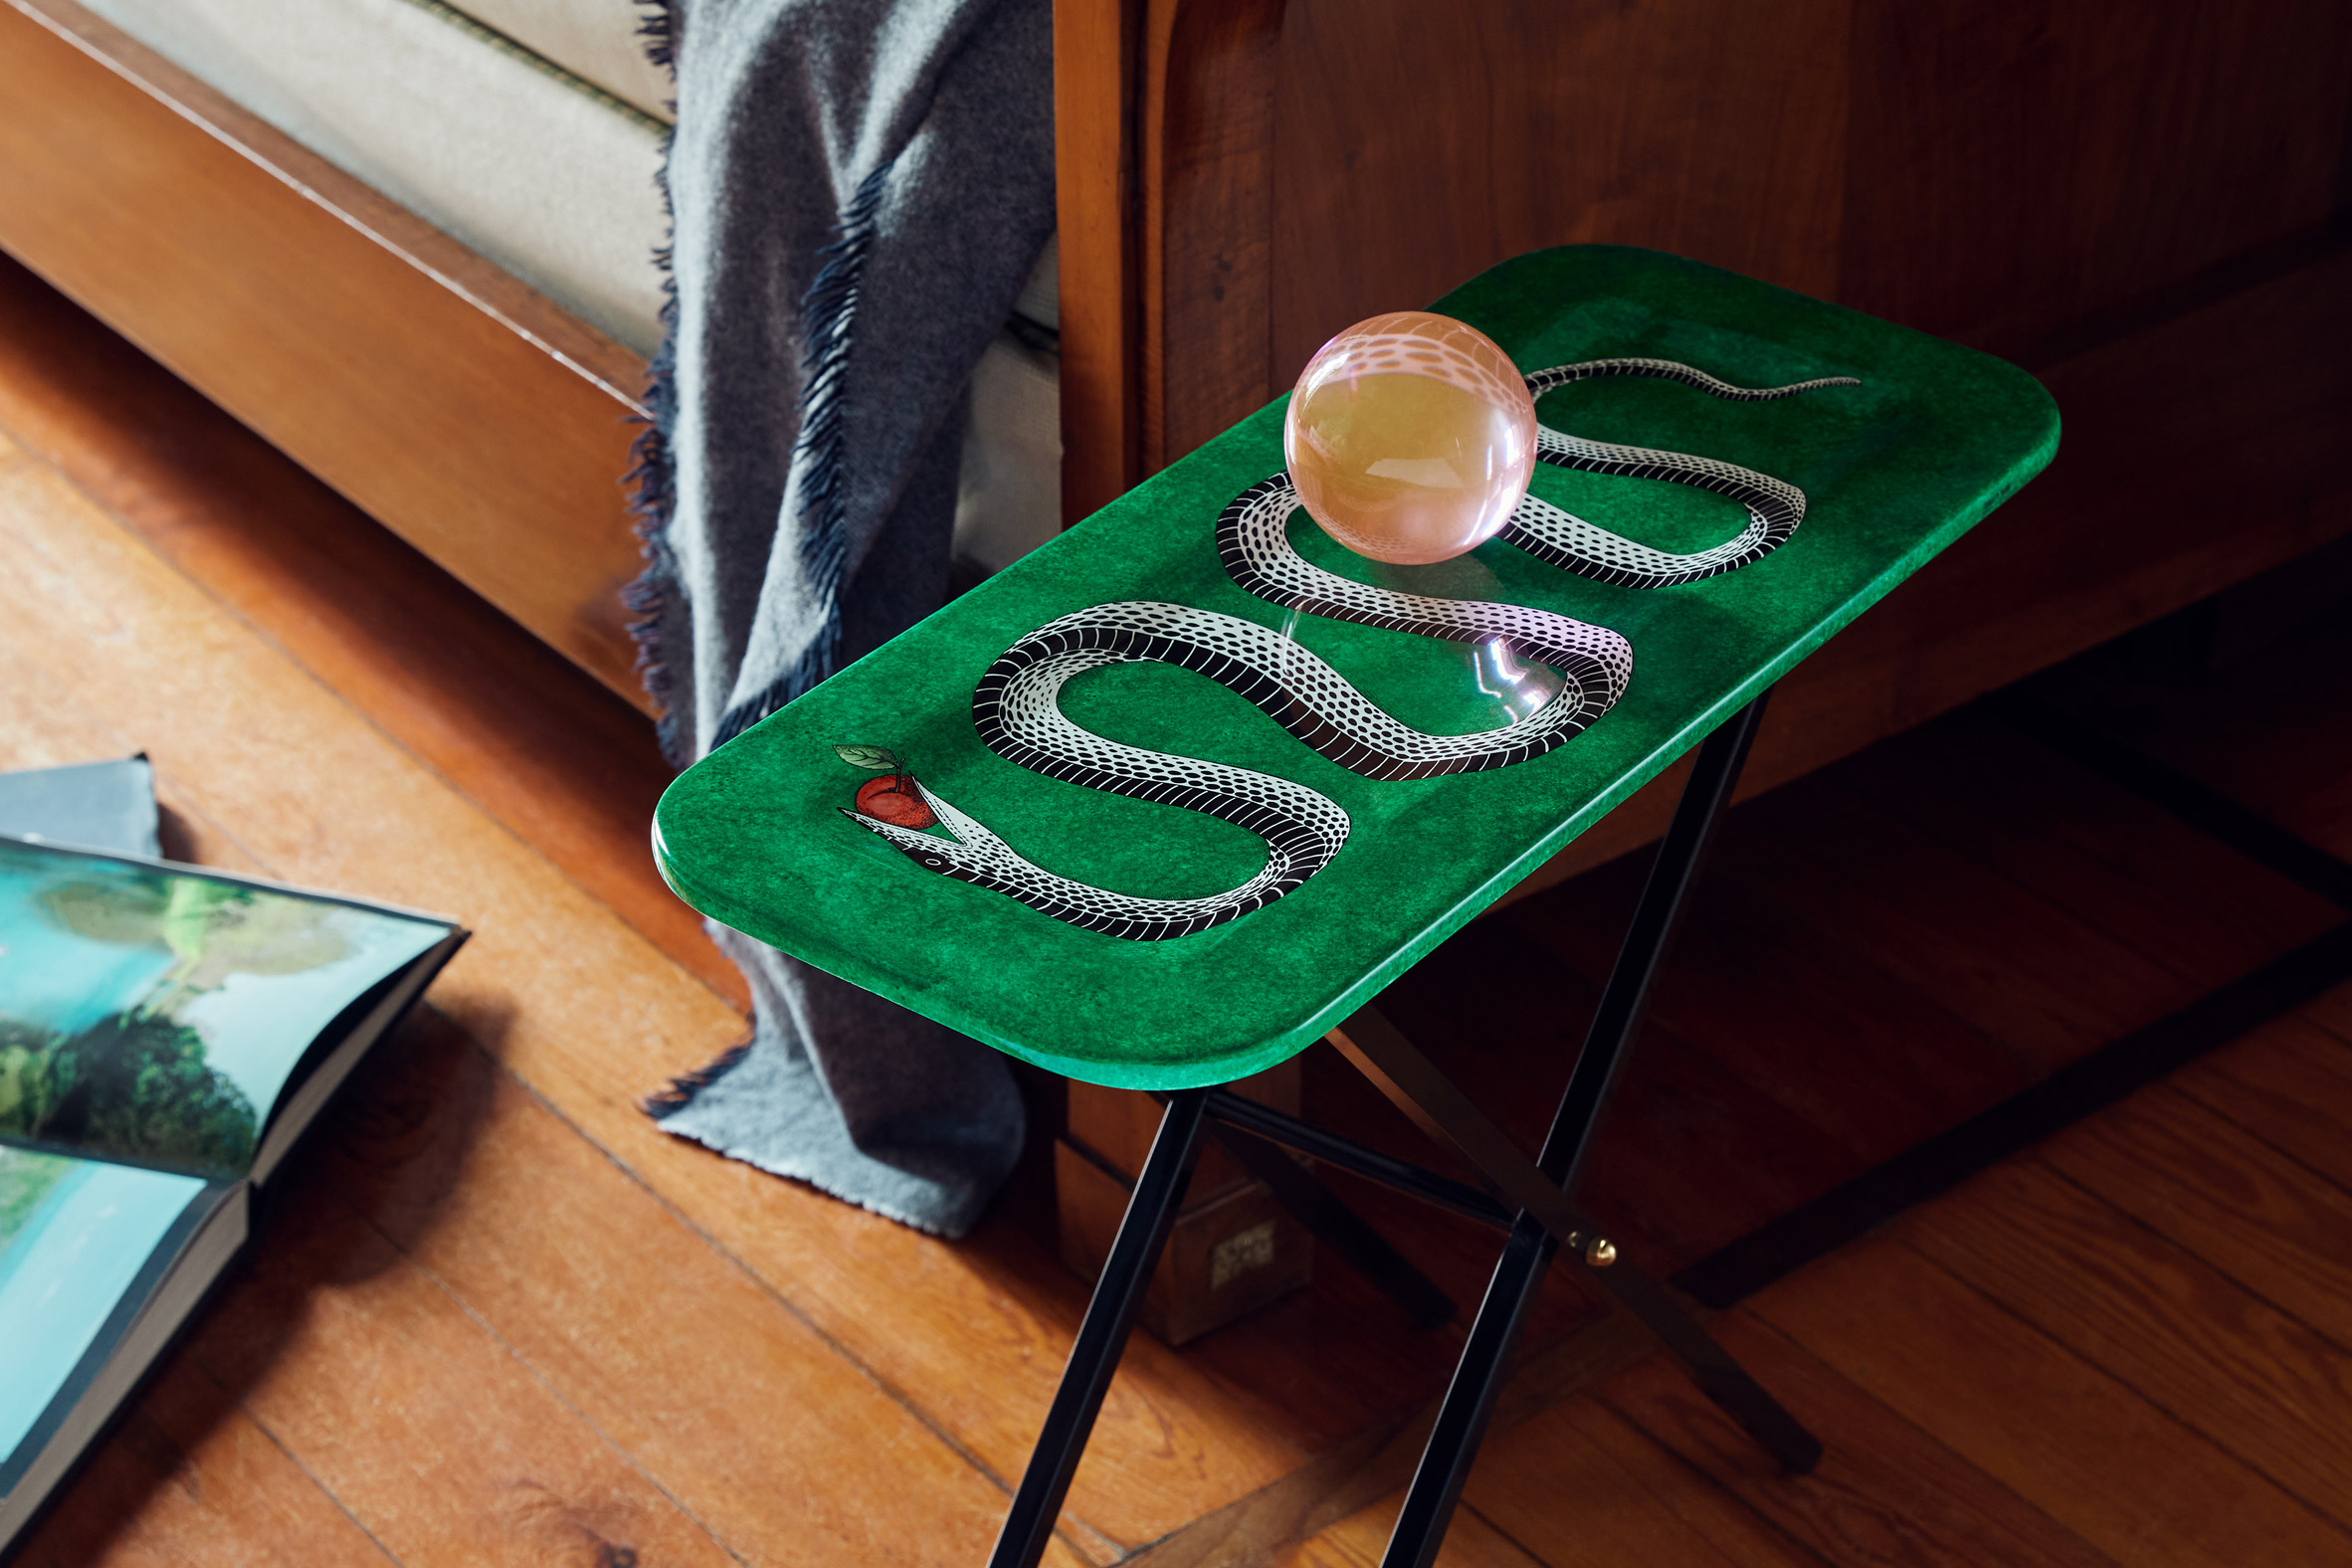 Serpente tray by Fornasetti